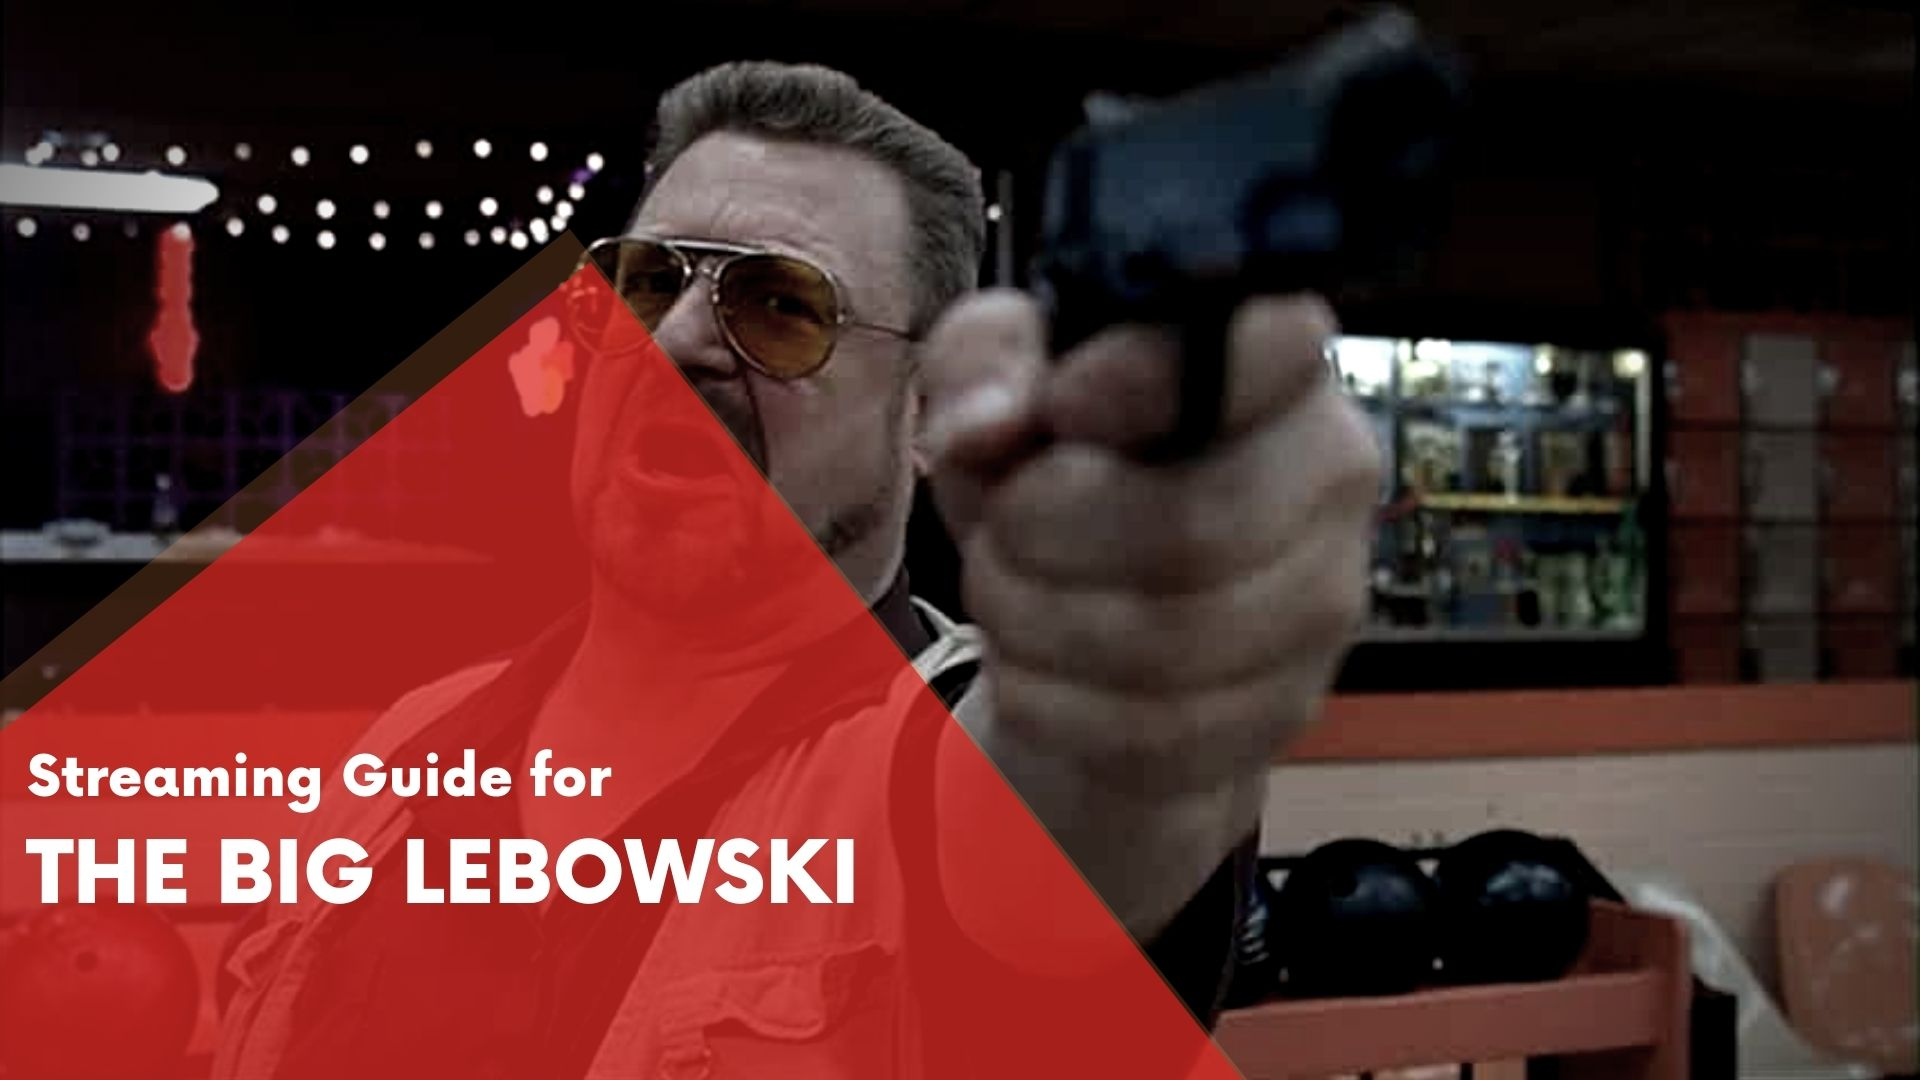 Answering if The Big Lebowski is available on Hulu